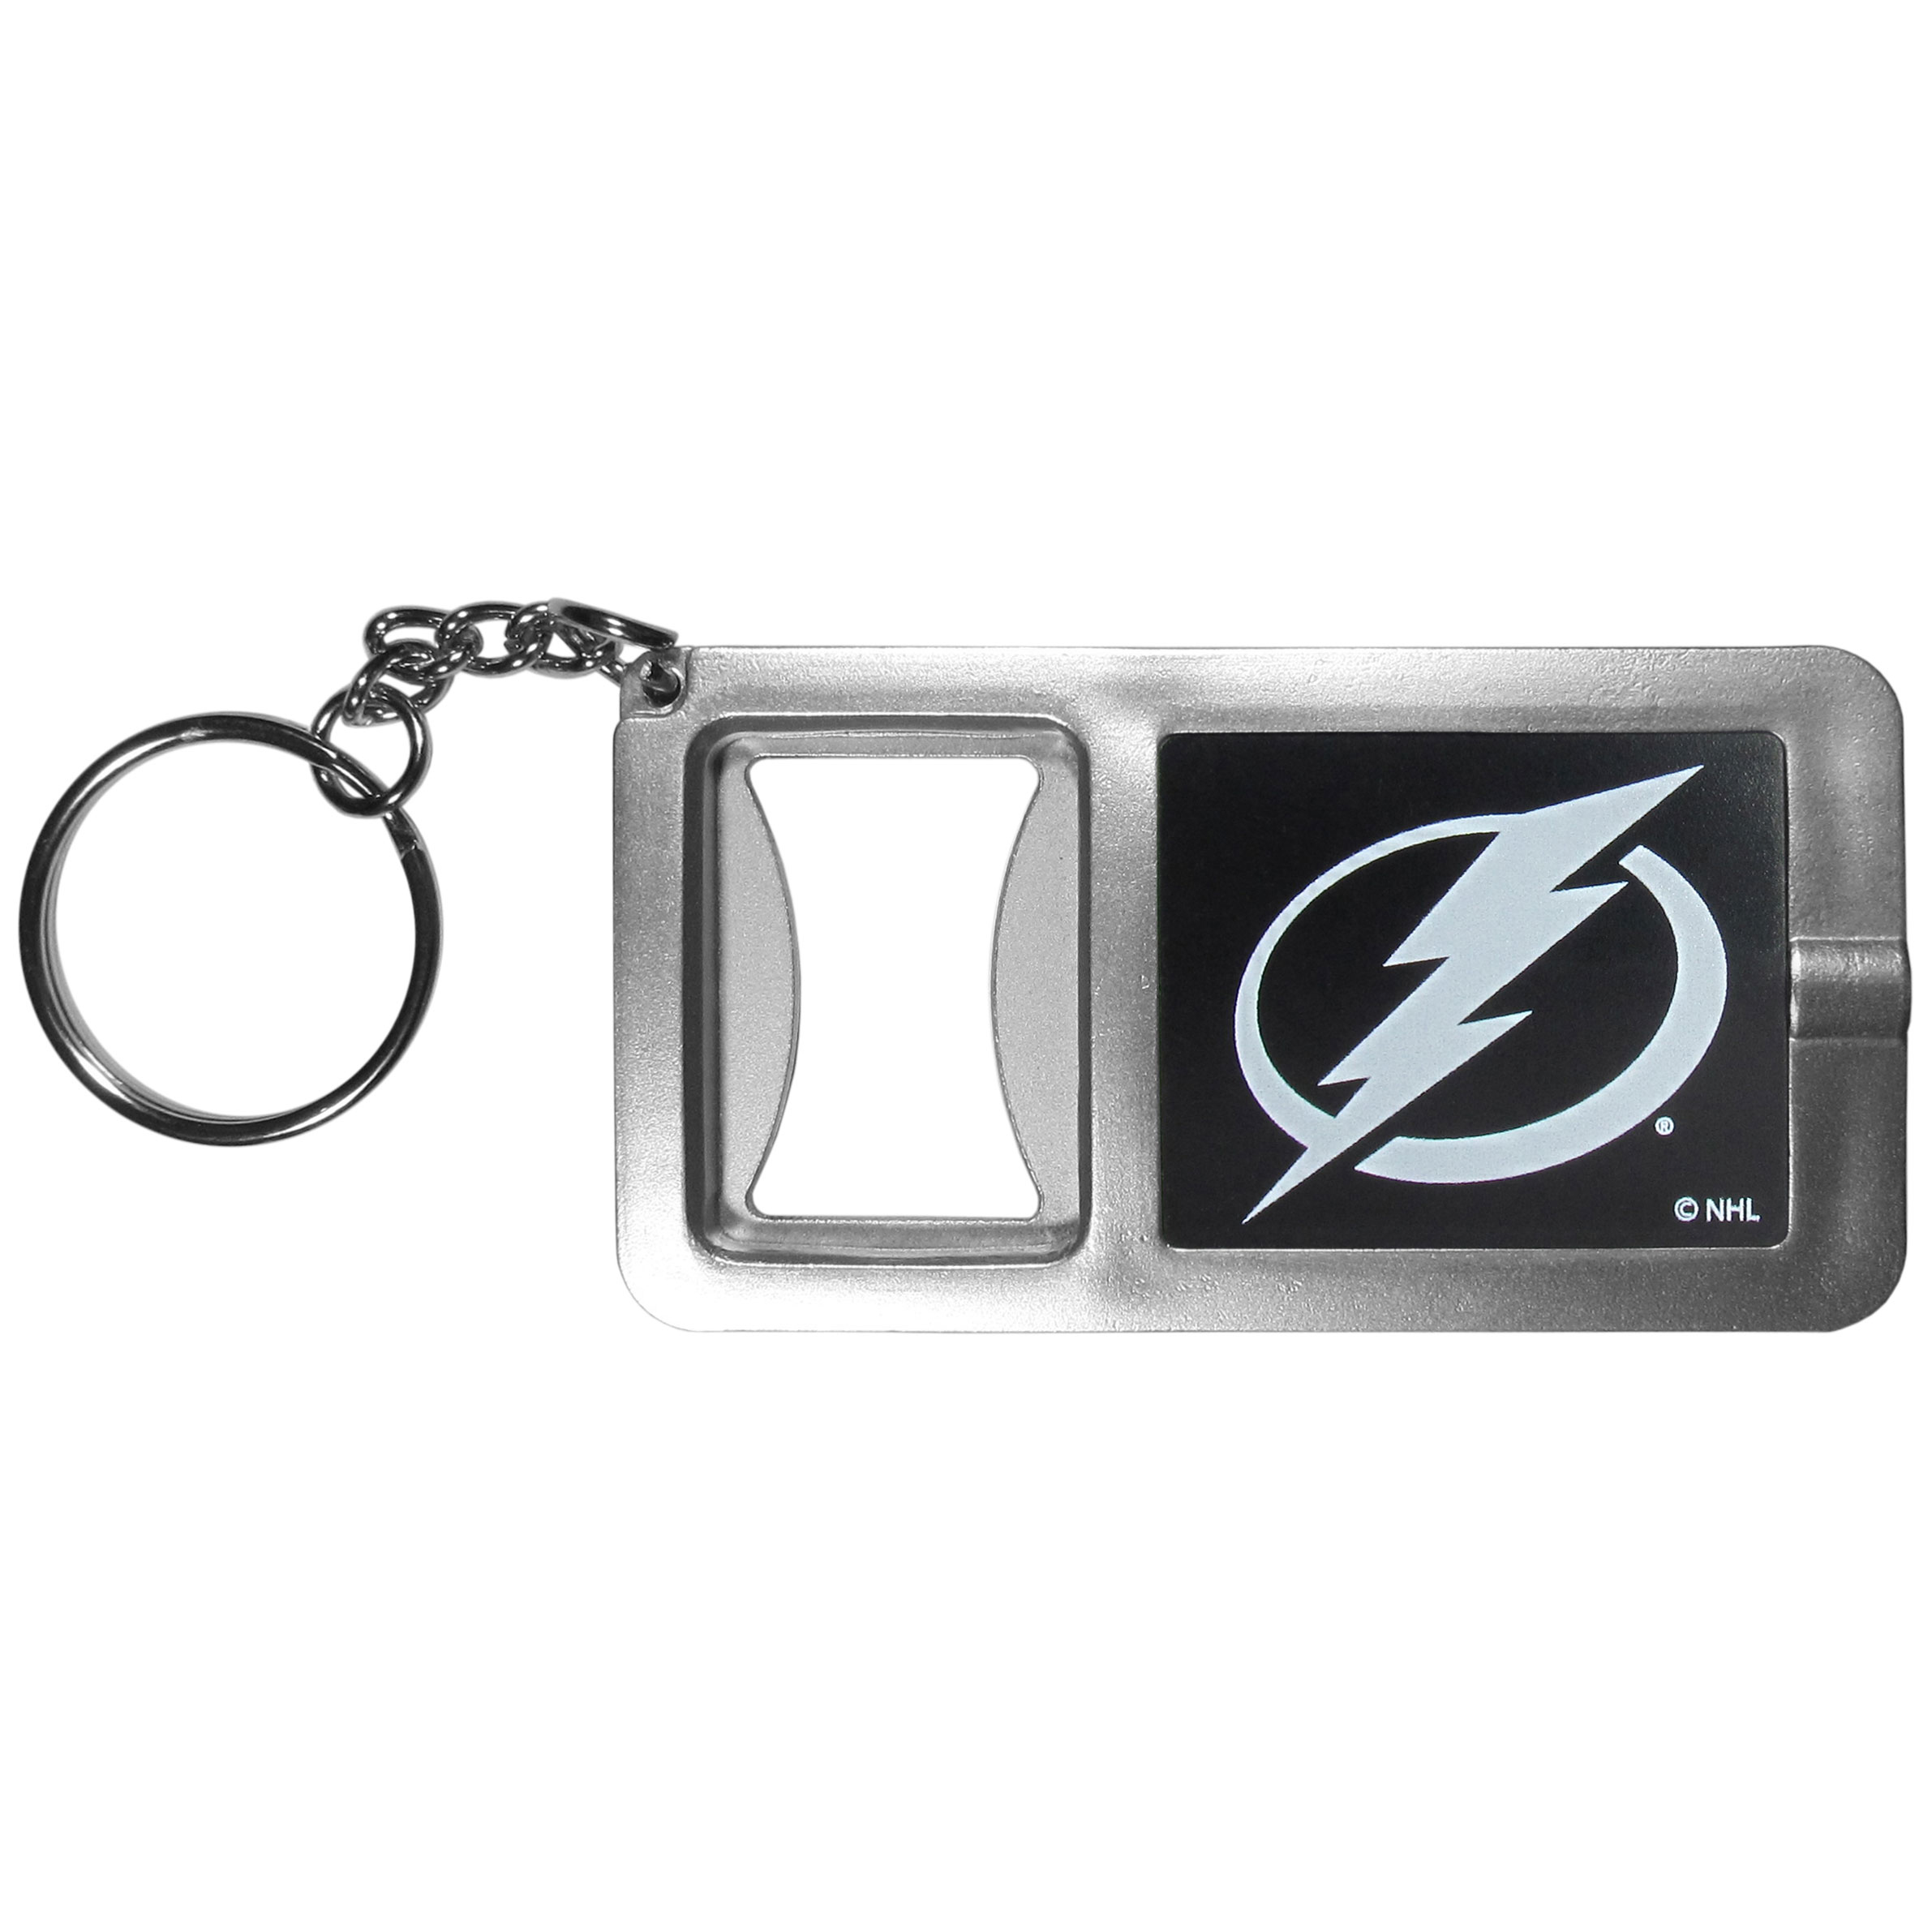 Tampa Bay Lightning® Flashlight Key Chain with Bottle Opener - Never be without light with our Tampa Bay Lightning® flashlight keychain that features a handy bottle opener feature. This versatile key chain is perfect for camping and travel and is a great way to show off your team pride!